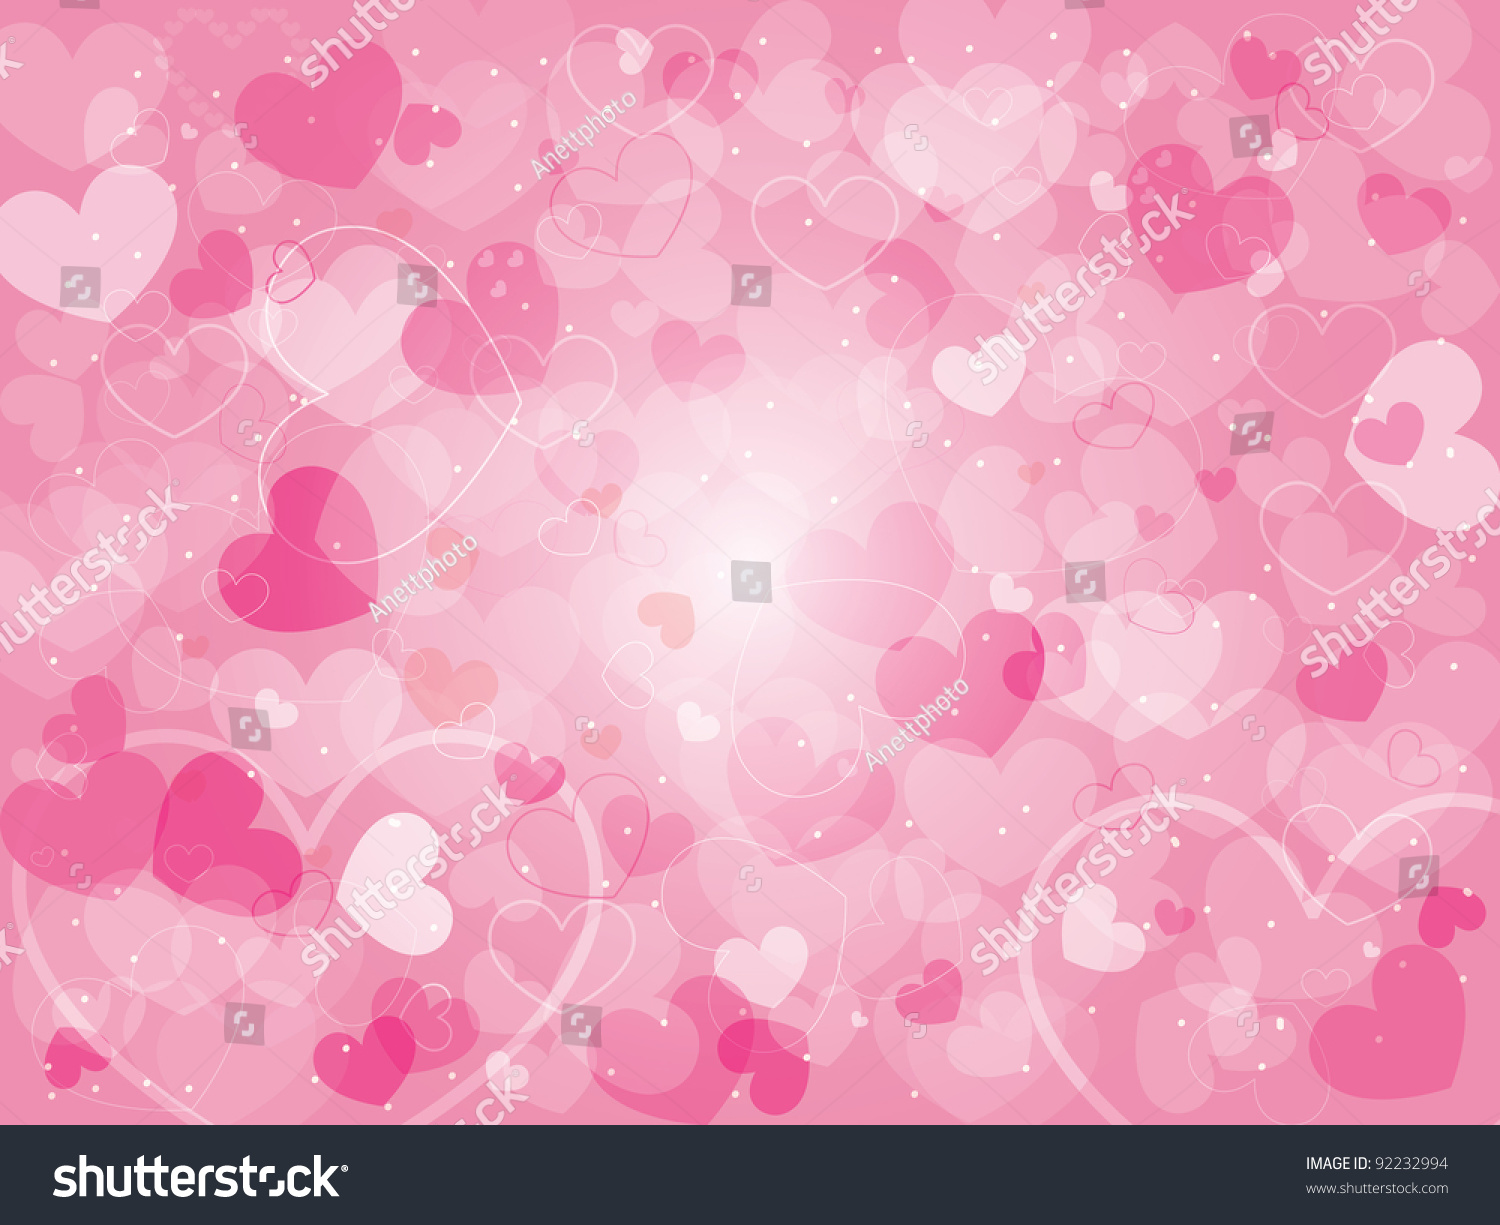 Valentines Day Background Hearts Stock Vector 92232994 - Shutterstock